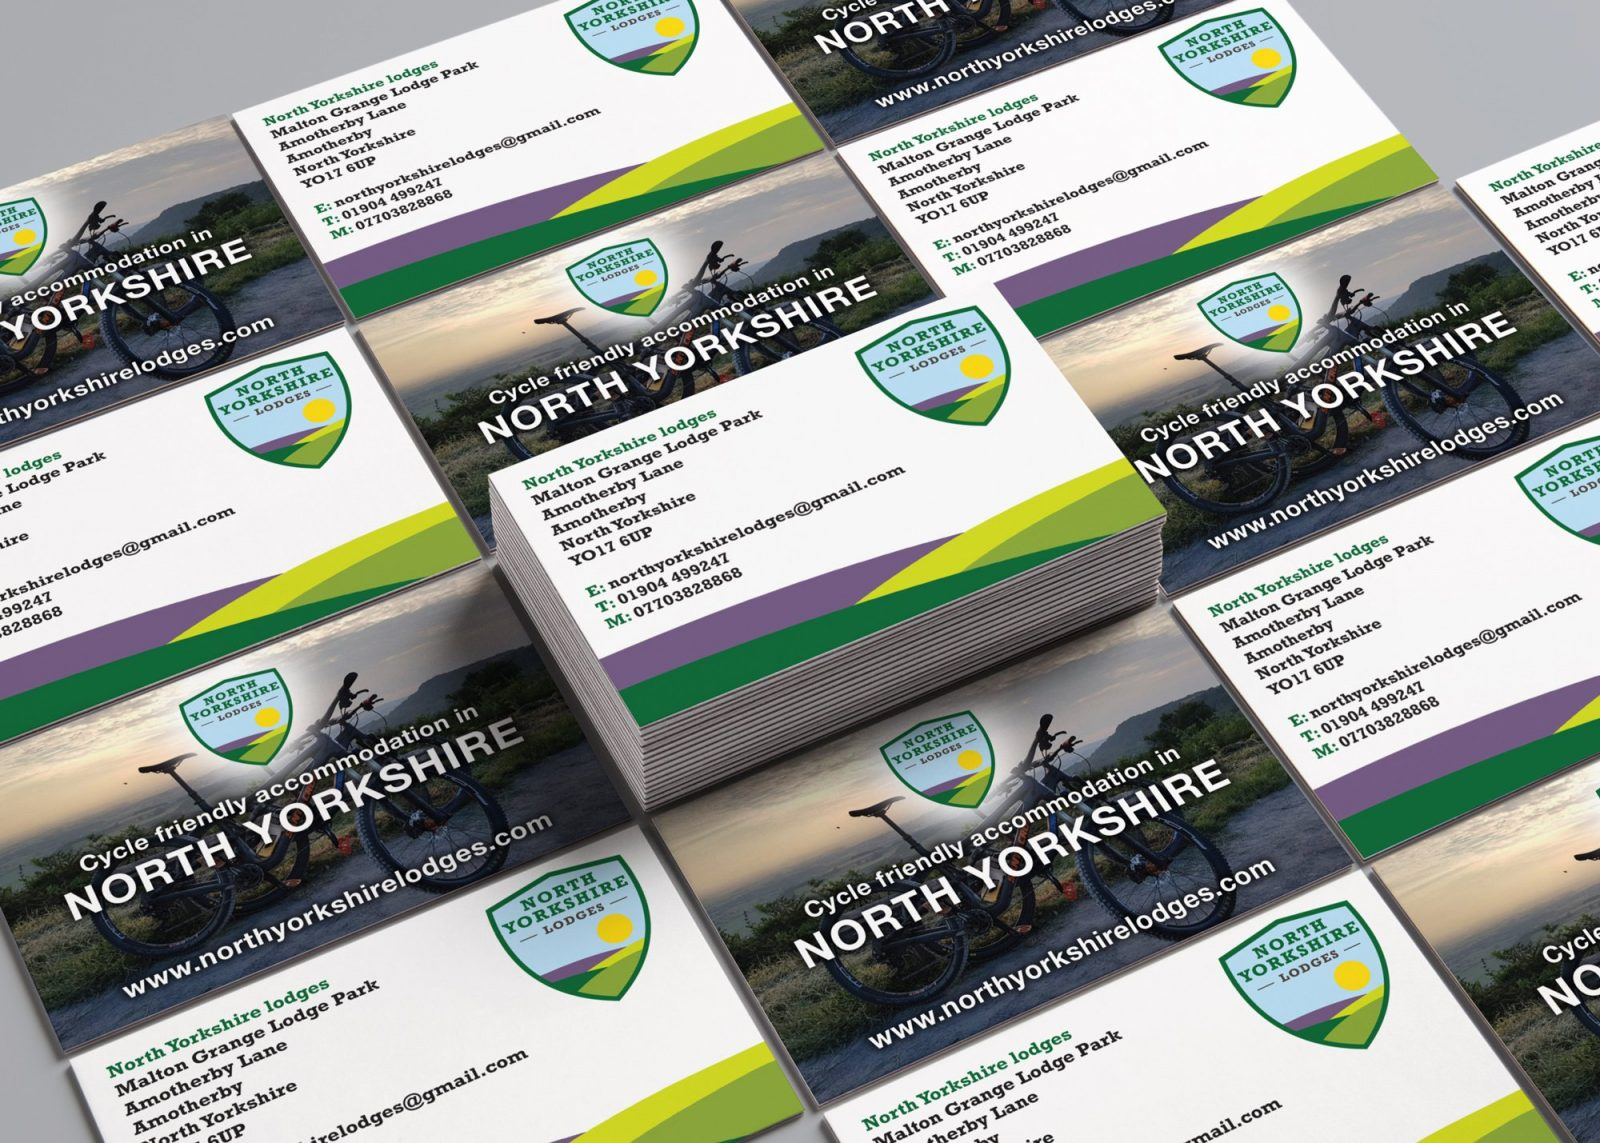 Business cards for North Yorkshire Lodges showing the front and back